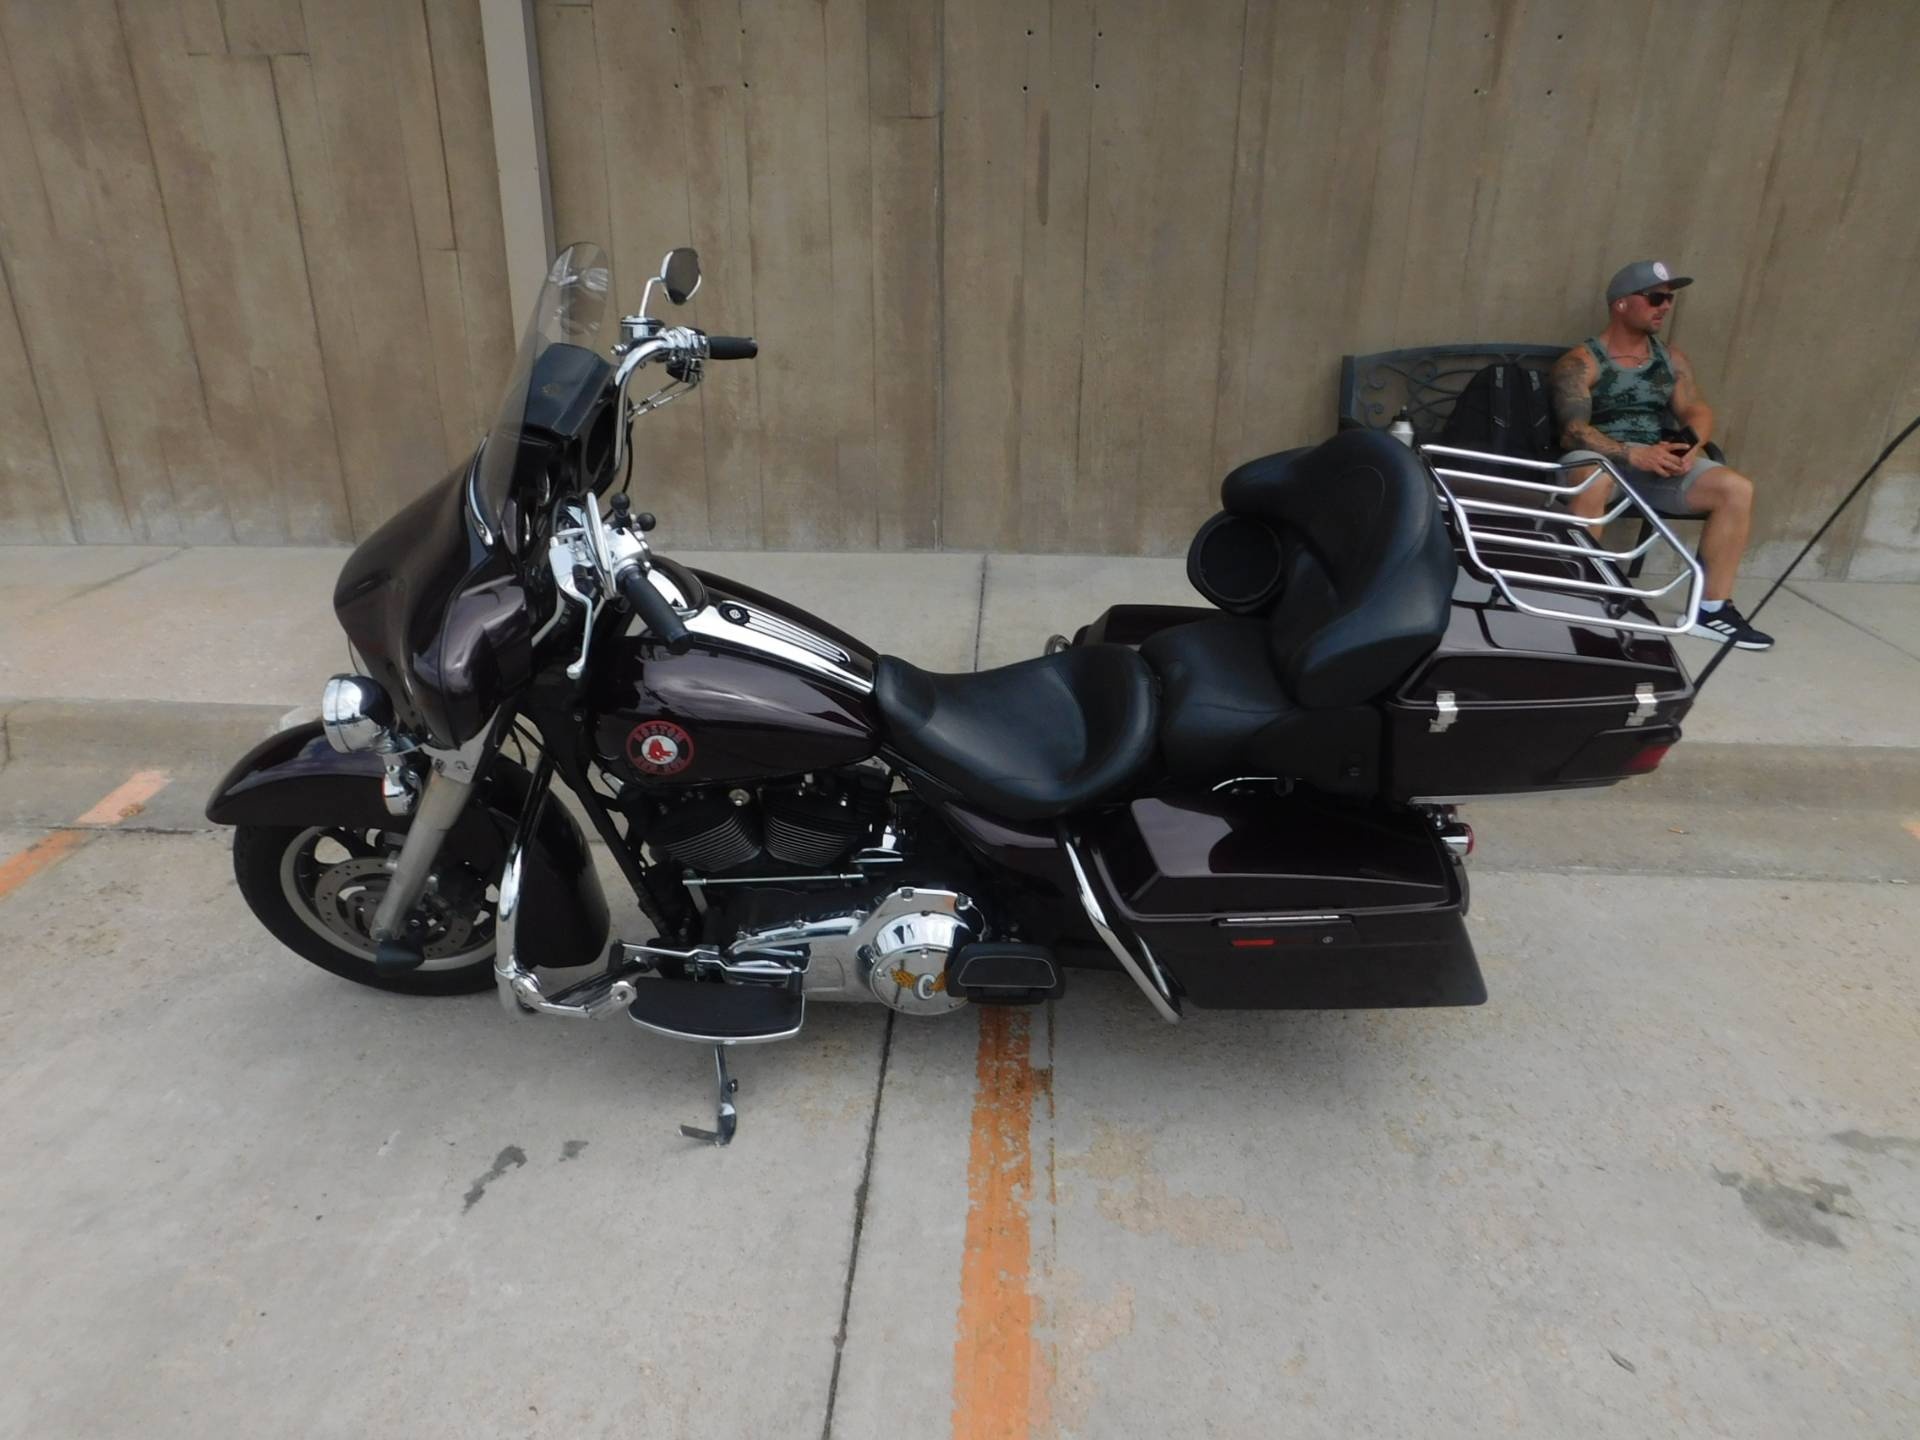 2007 Harley-Davidson FLHTCU Ultra Classic® Electra Glide® Peace Officer Special Edition in Colorado Springs, Colorado - Photo 2